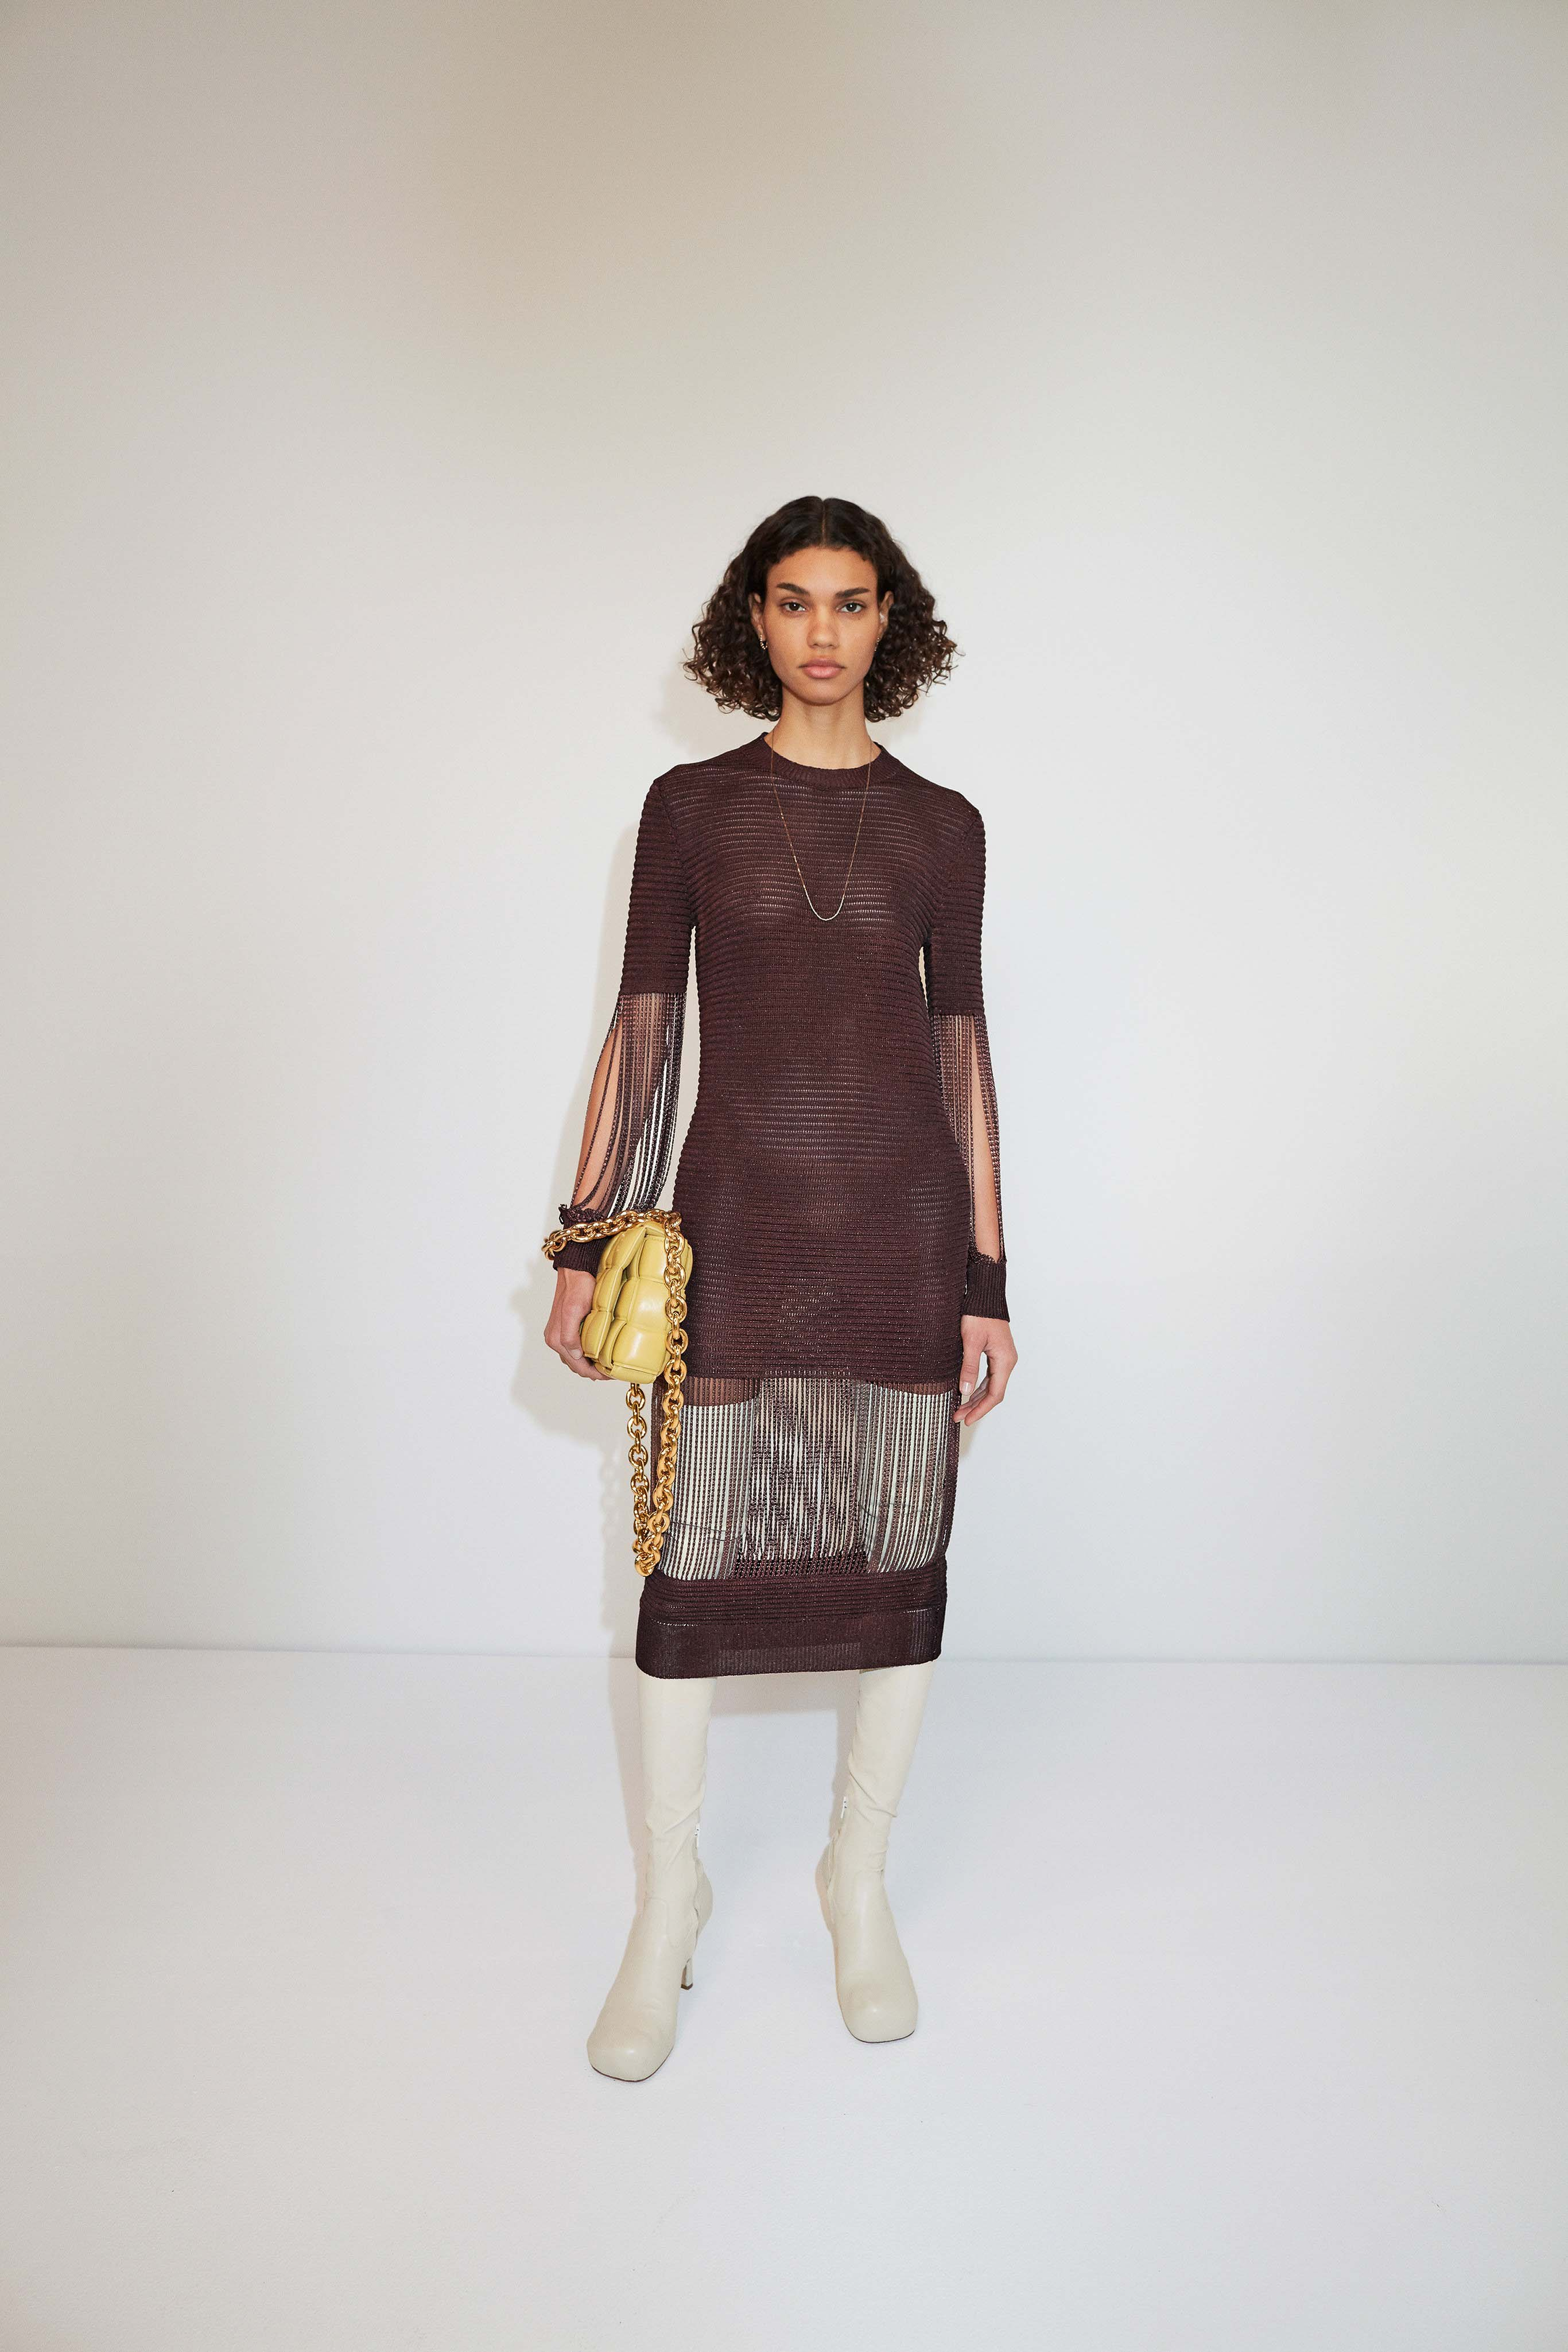 Bottega Veneta Pre fall 2020 Lookbook trends runway coverage Ready To Wear Vogue Fringes